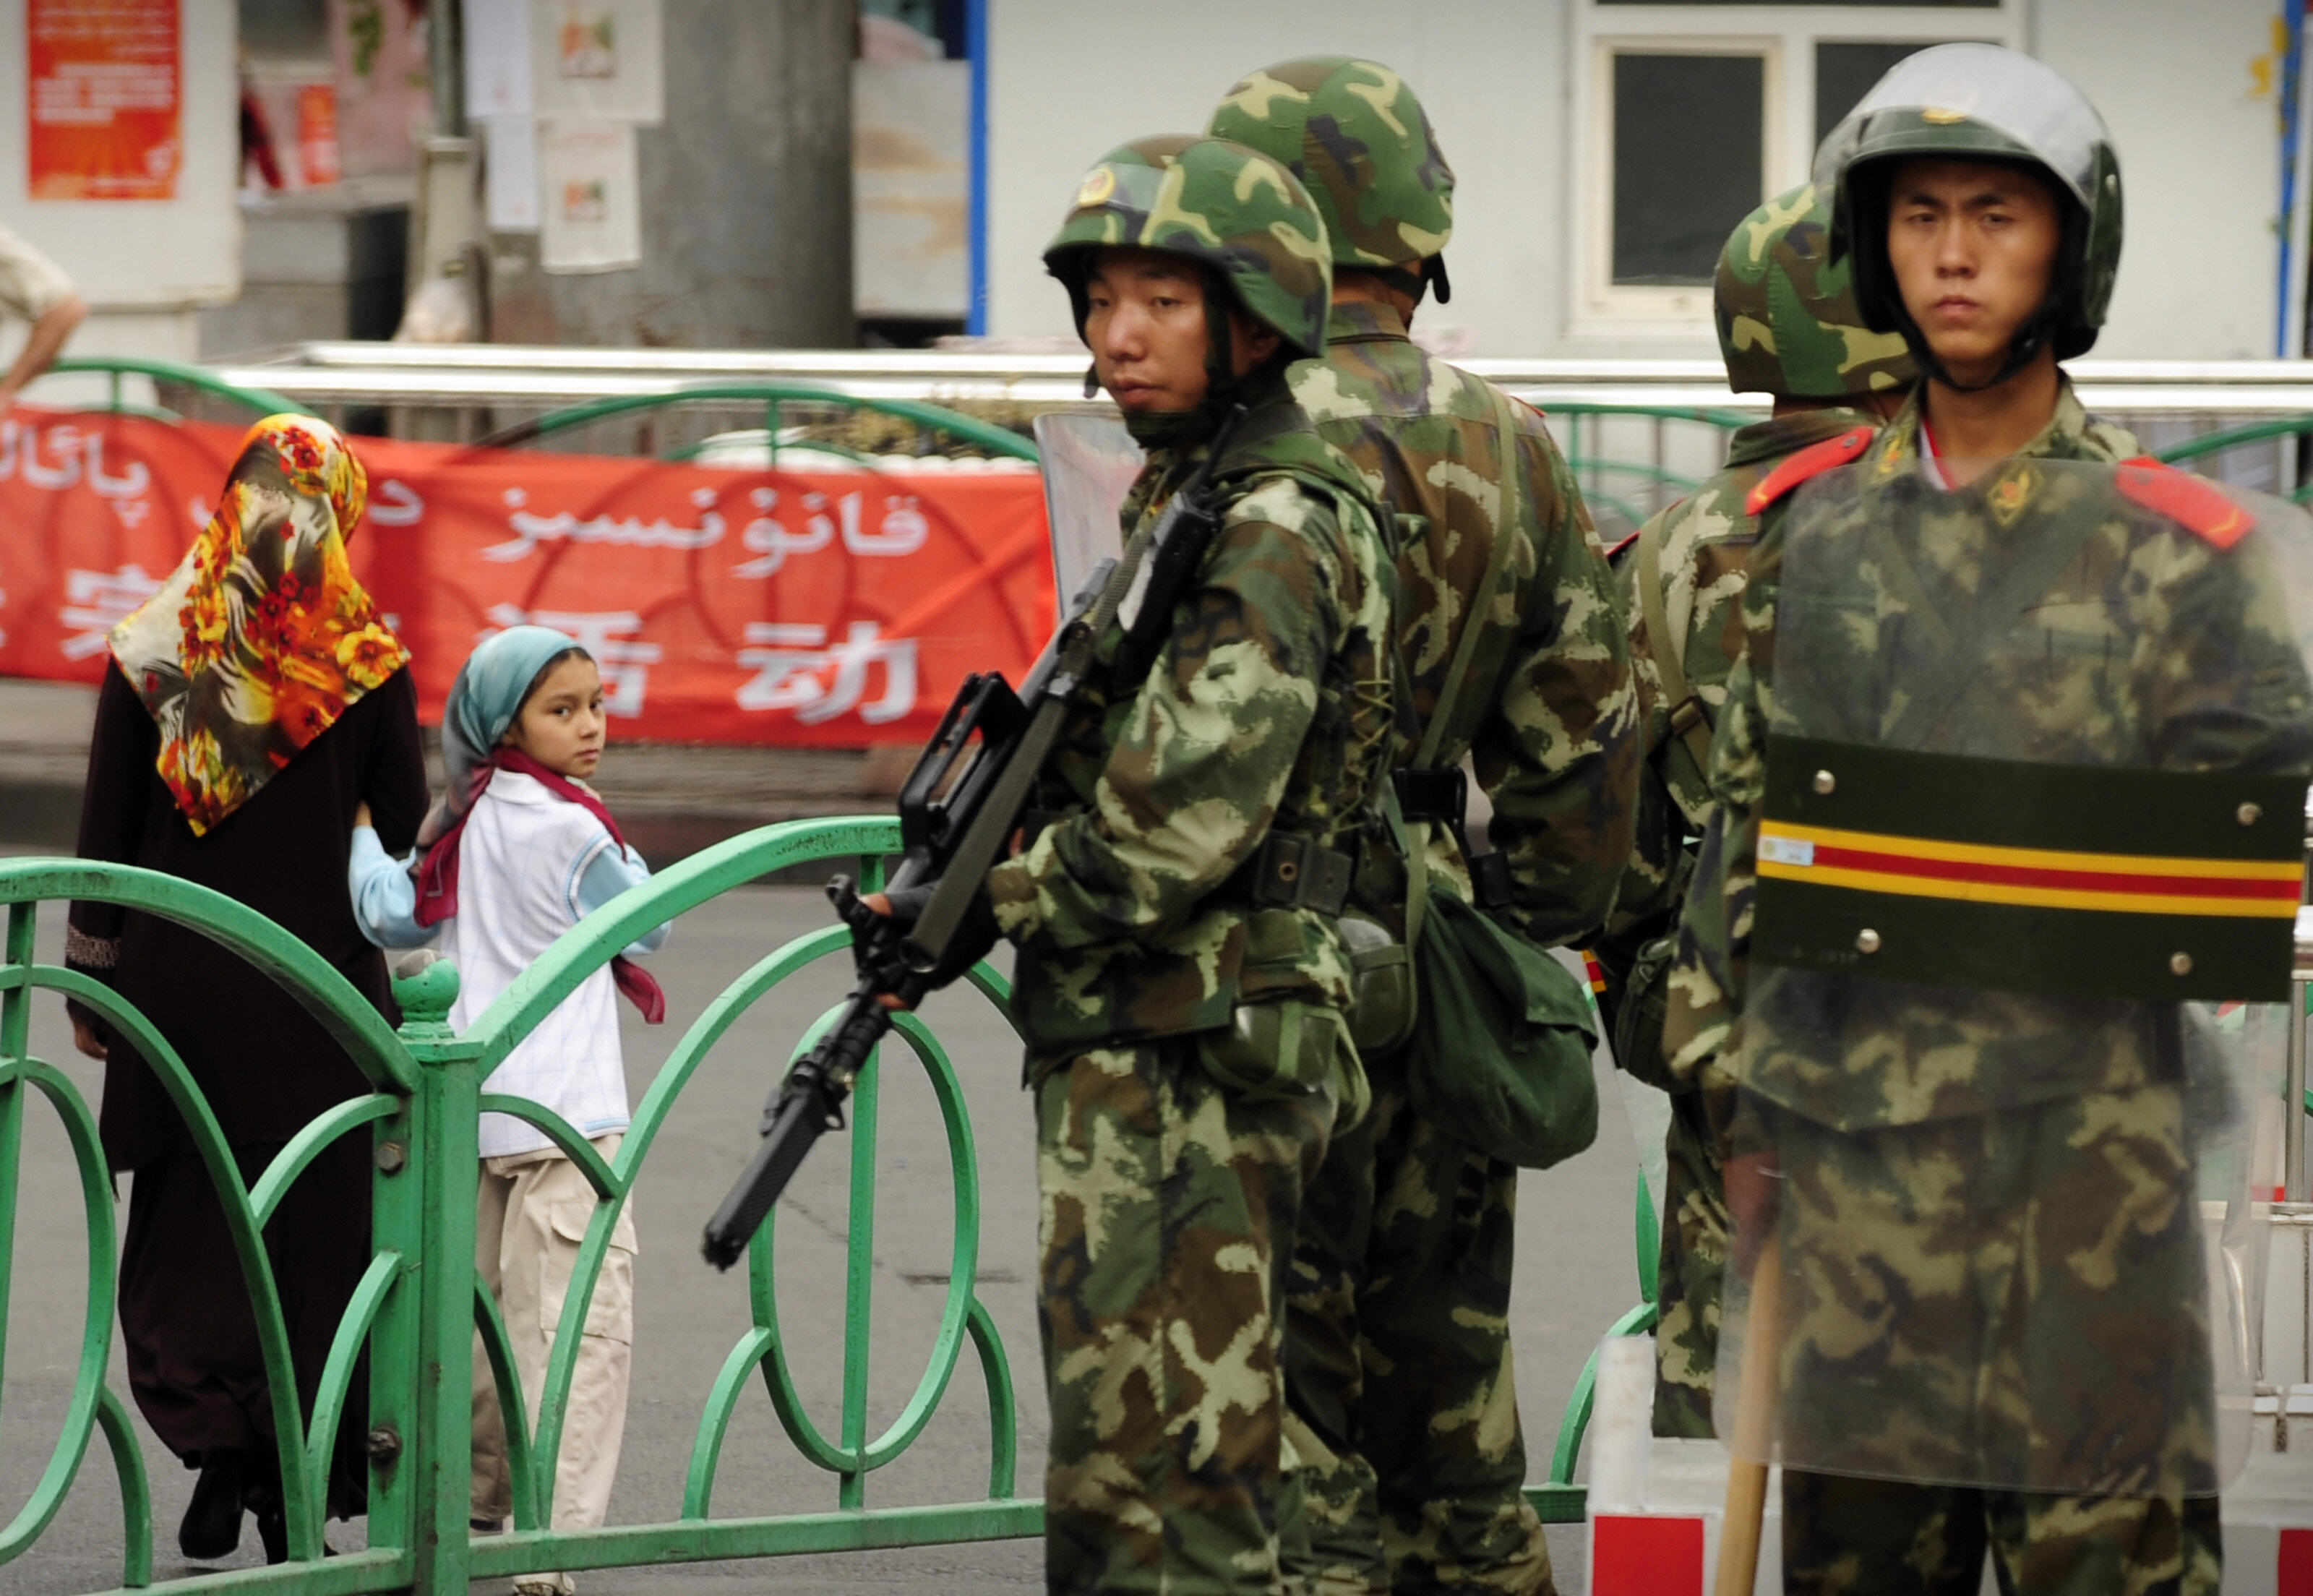 Chinese paramilitary policemen stand guard on a street in the Uighur district of Urumqi city, in China's Xinjiang region, on July 14, 2009. A mosque was closed and many businesses were shuttered a day after police shot dead two Muslim Uighurs, as ethnic tensions simmered in China's restive Urumqi city. (PETER PARKS/AFP via Getty Images)